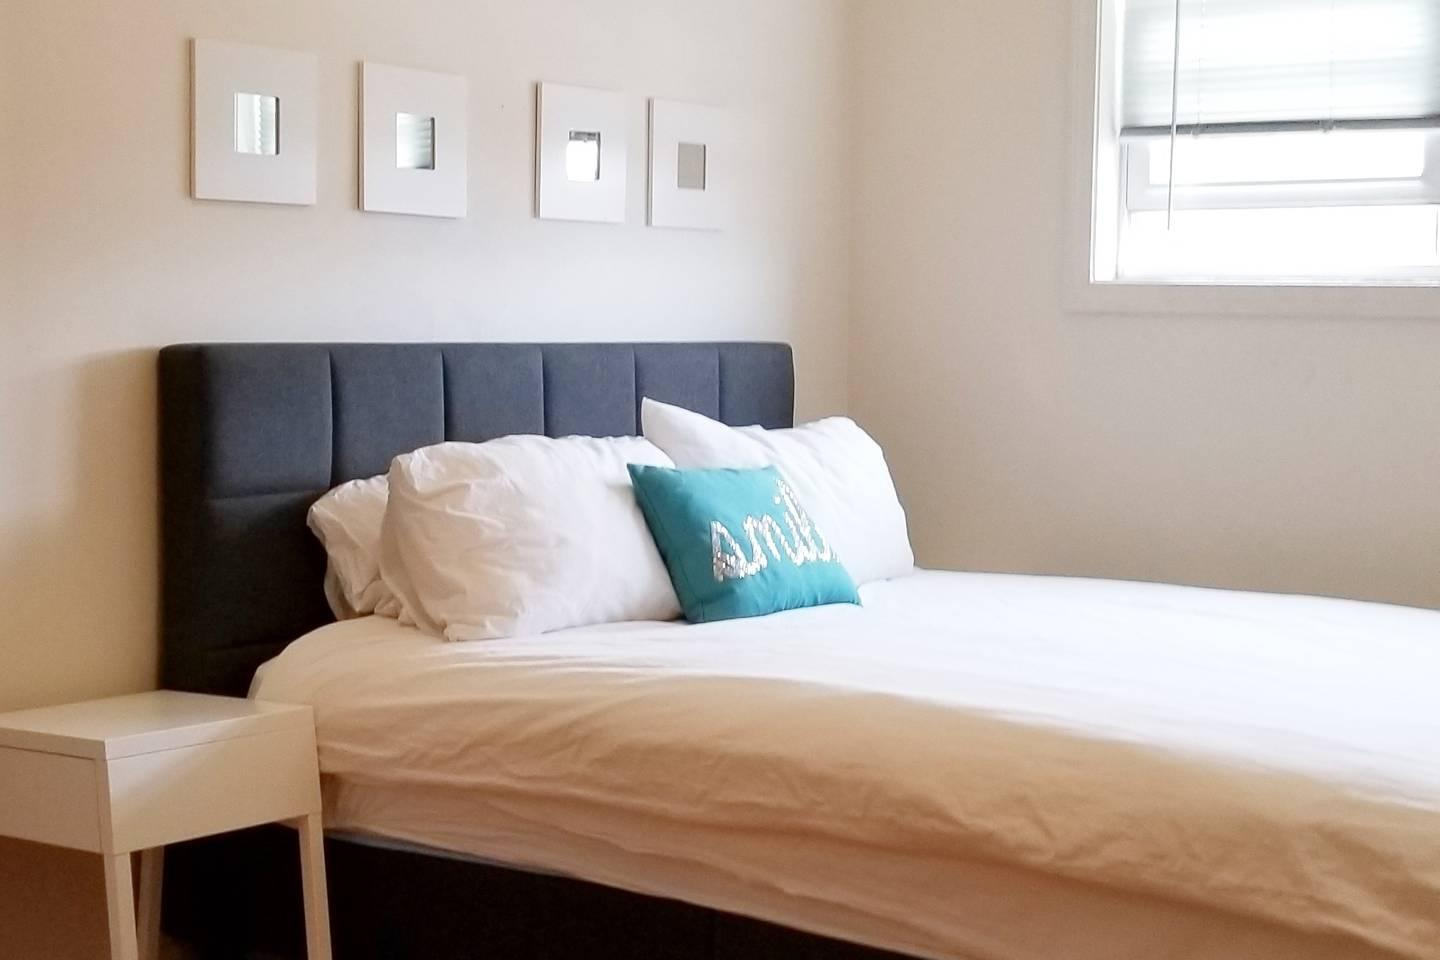 BOSTON AIRBNB SAVE $$$ ON STAY #2A photo 5841517